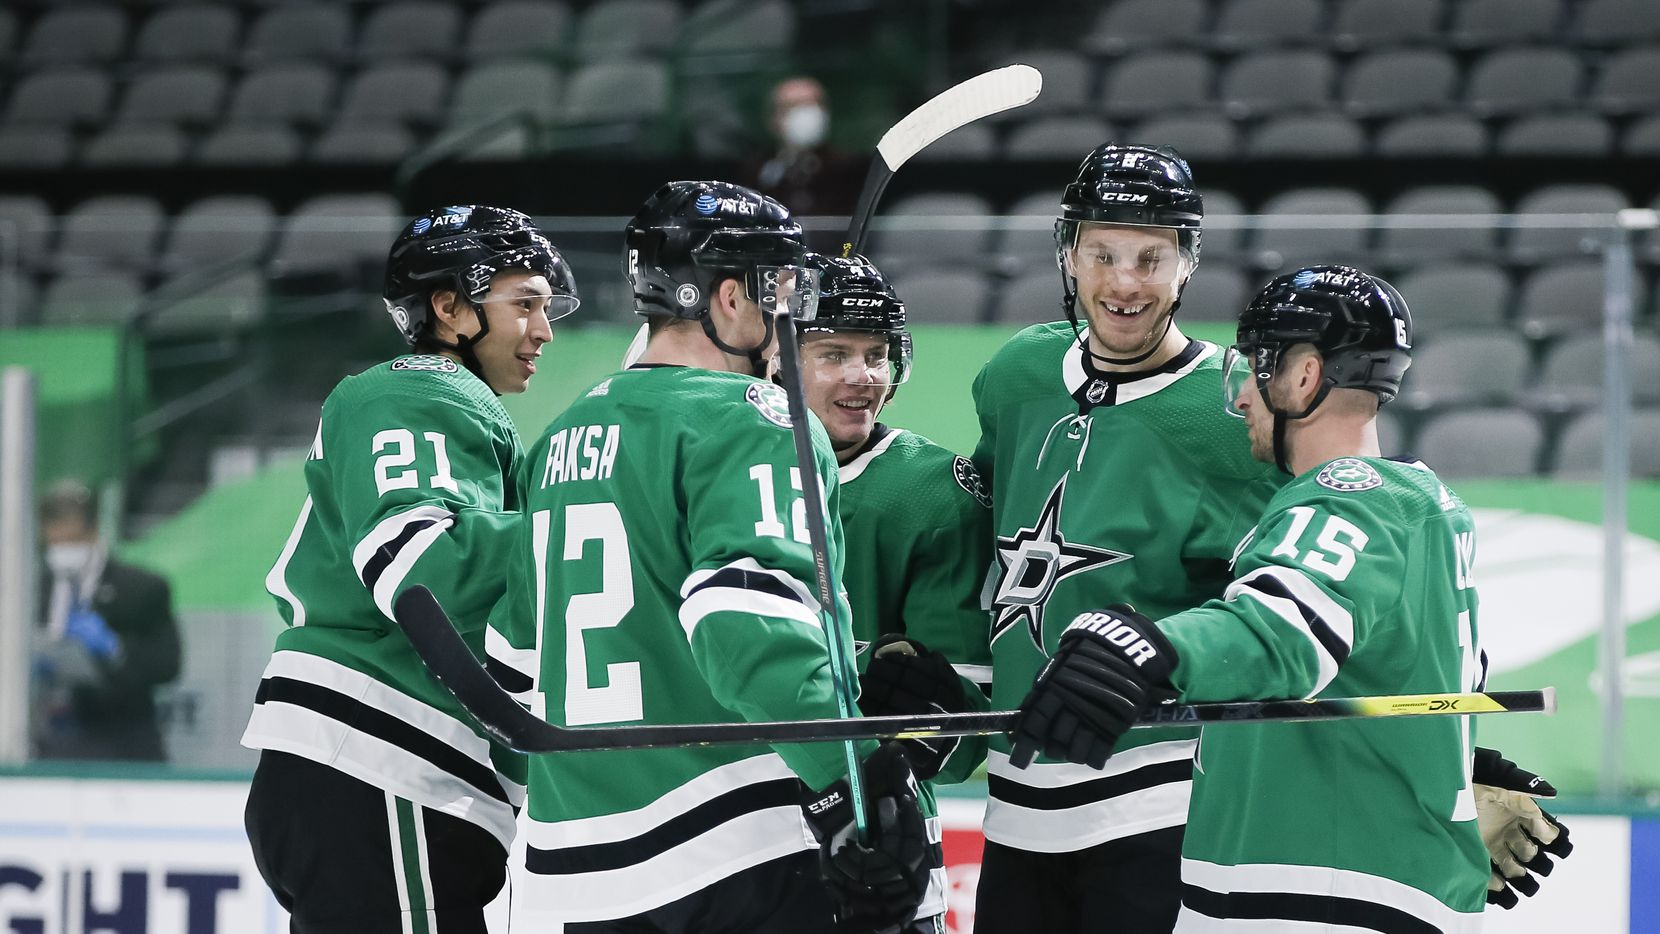 Dallas Stars forward Radek Faksa (12) is congratulated by teammates after scoring a goal during the first period of an NHL hockey game against the Nashville Predators in Dallas Sunday, March 21, 2021. (Brandon Wade/Special Contributor)